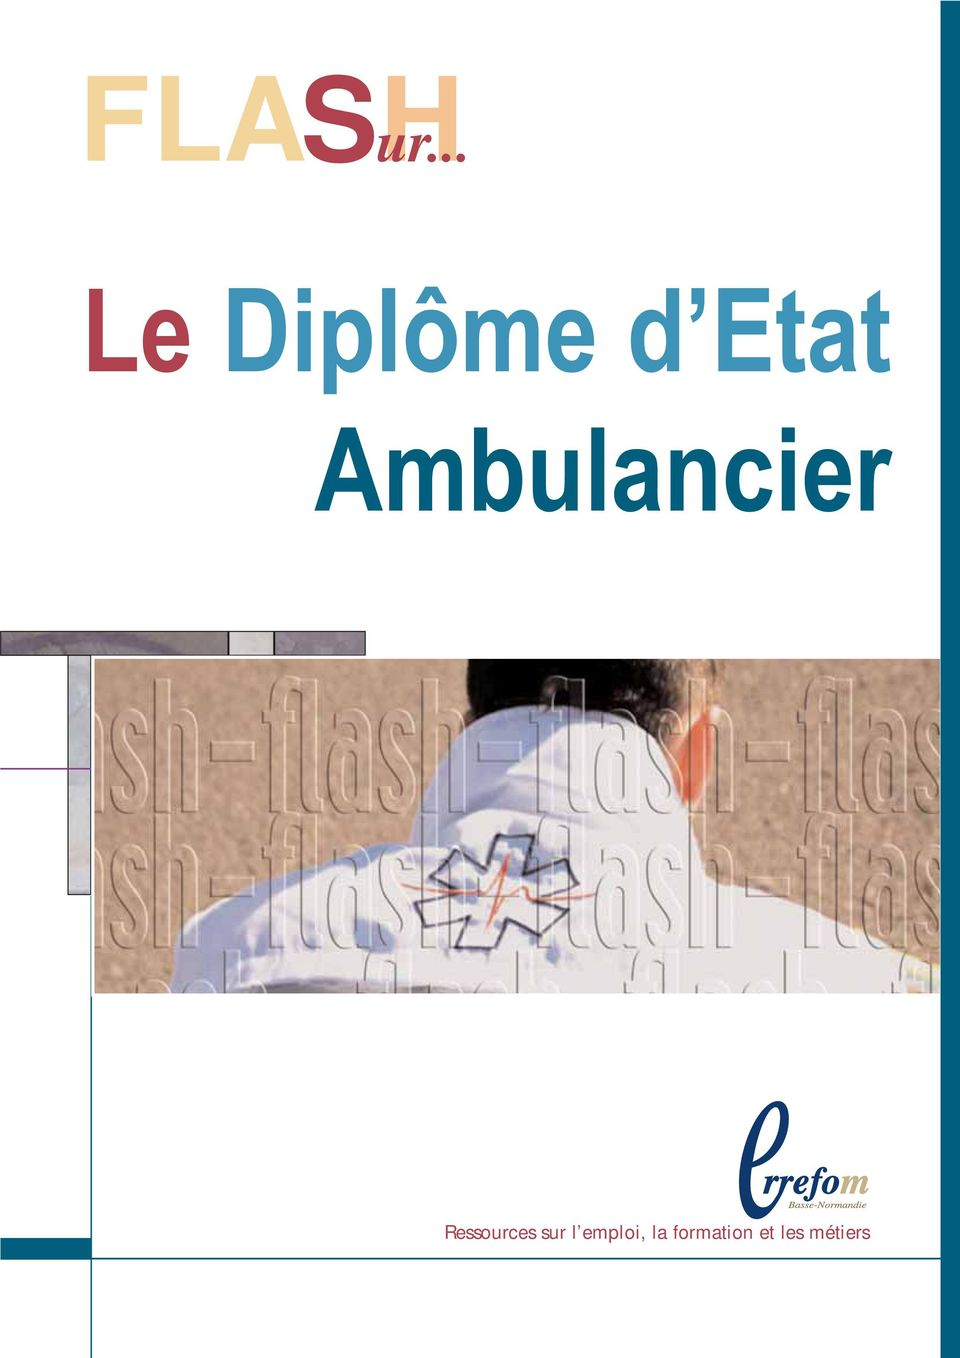 Ambulancier Ressources